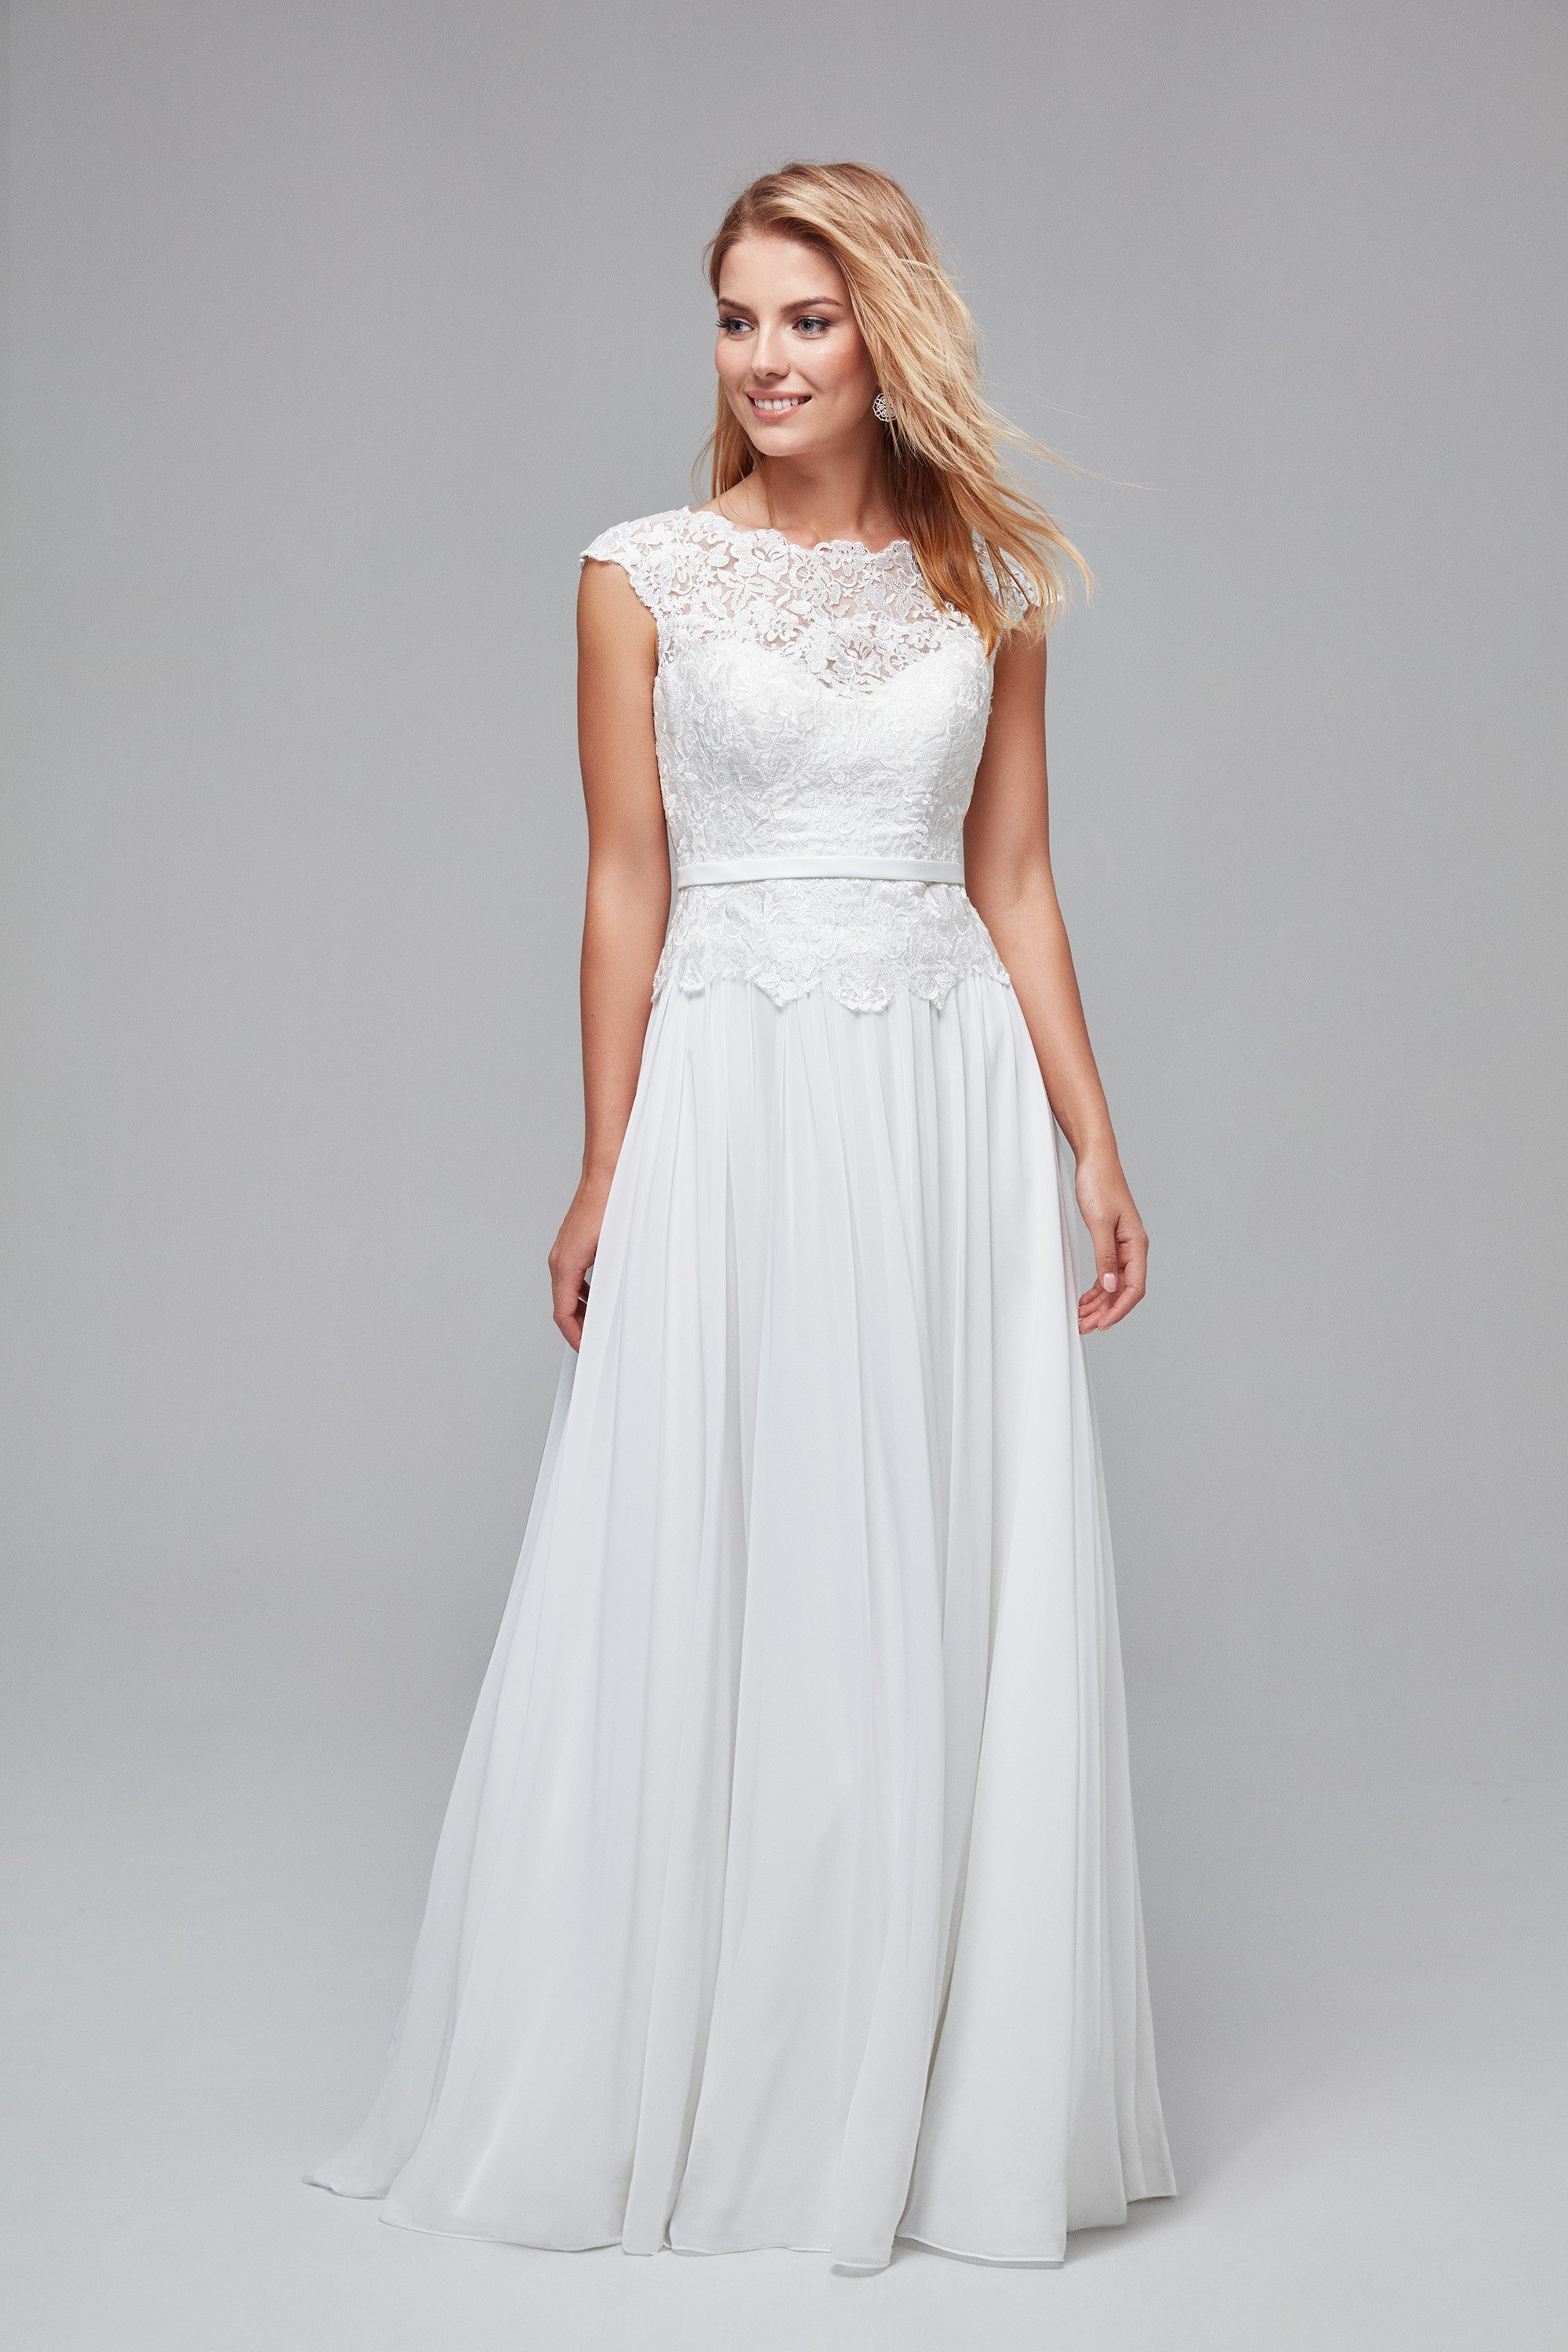 Lace a line wedding dress weddings dresses A line lace wedding dress australia